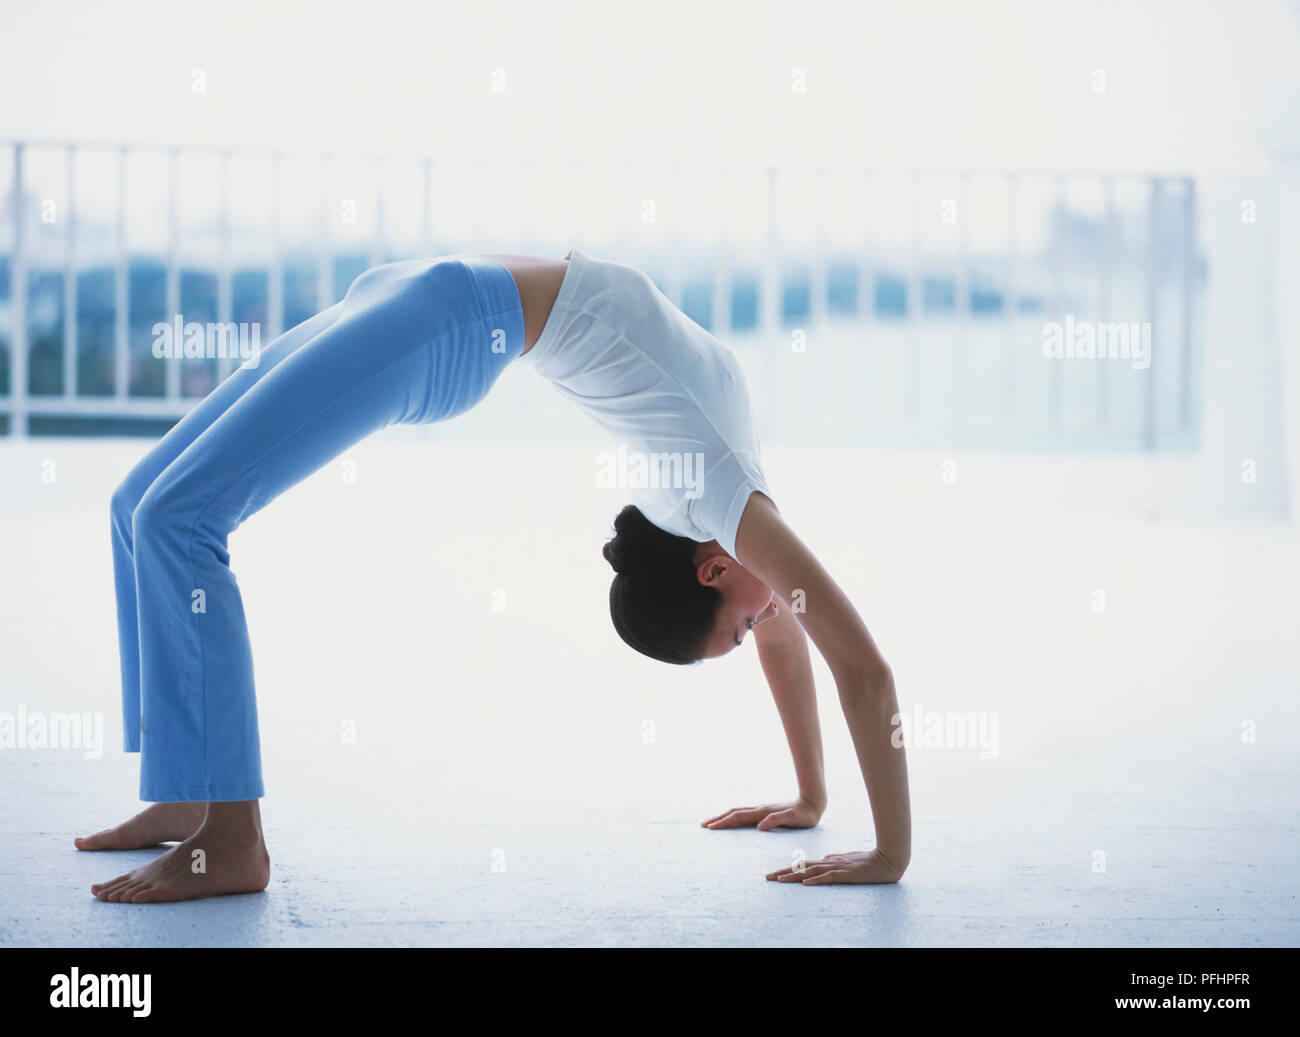 Arched Spine Stock Photos & Arched Spine Stock Images - Alamy